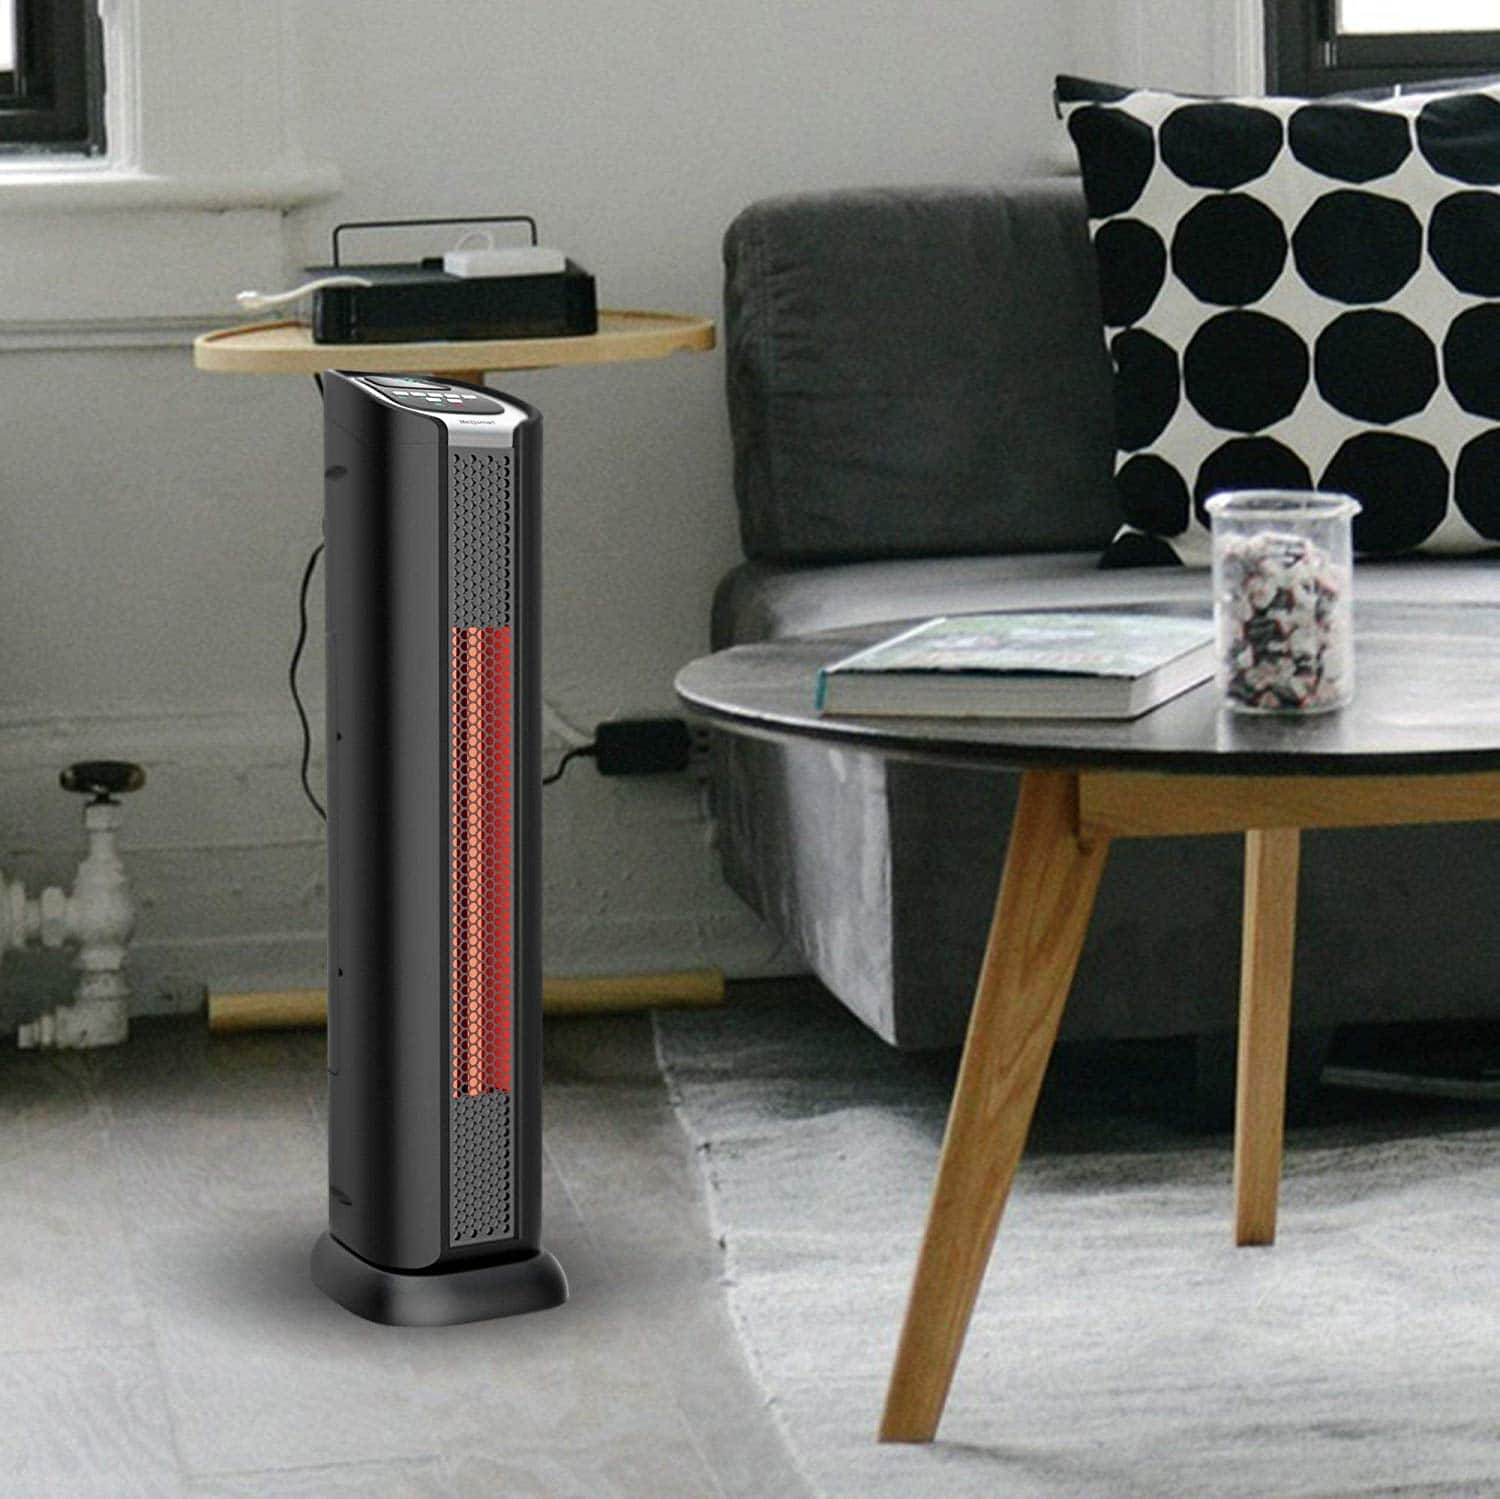 Top 10 Best Tower Heaters In 2019 Reviews Guide